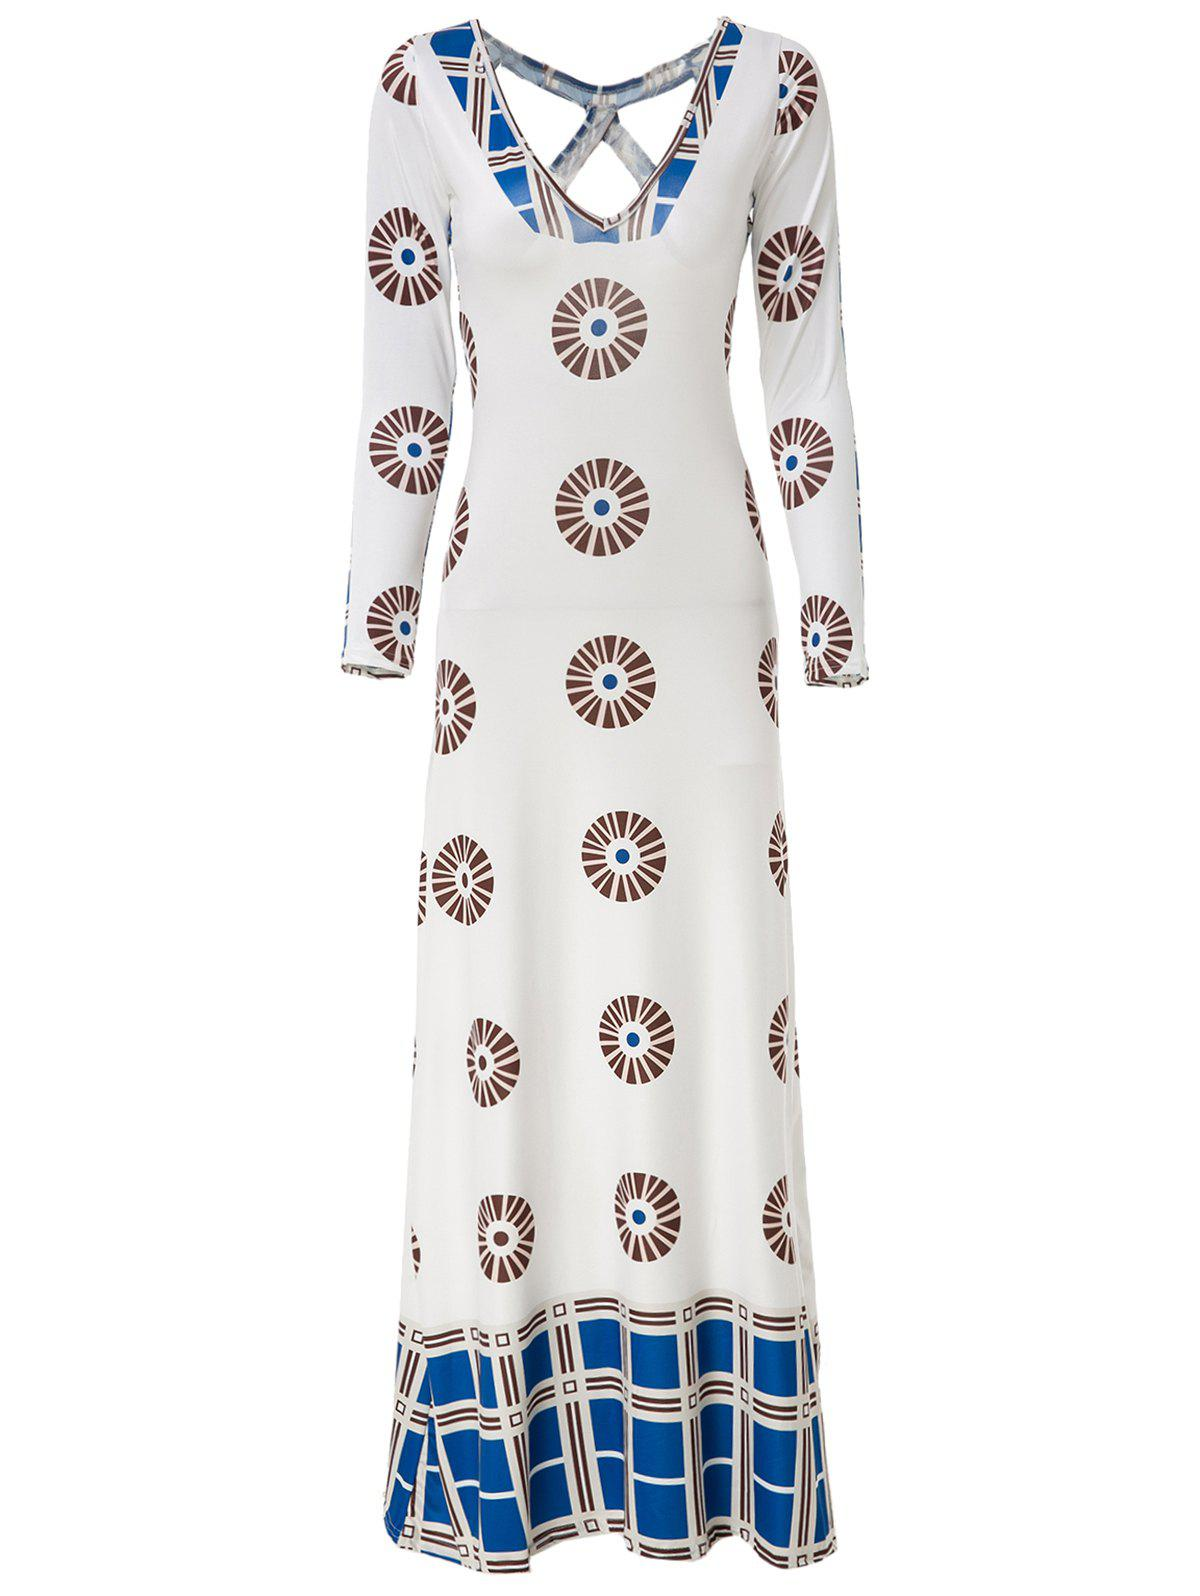 Ethnic Women's Plunging Neck Long Sleeve Printed Backless Maxi Dress